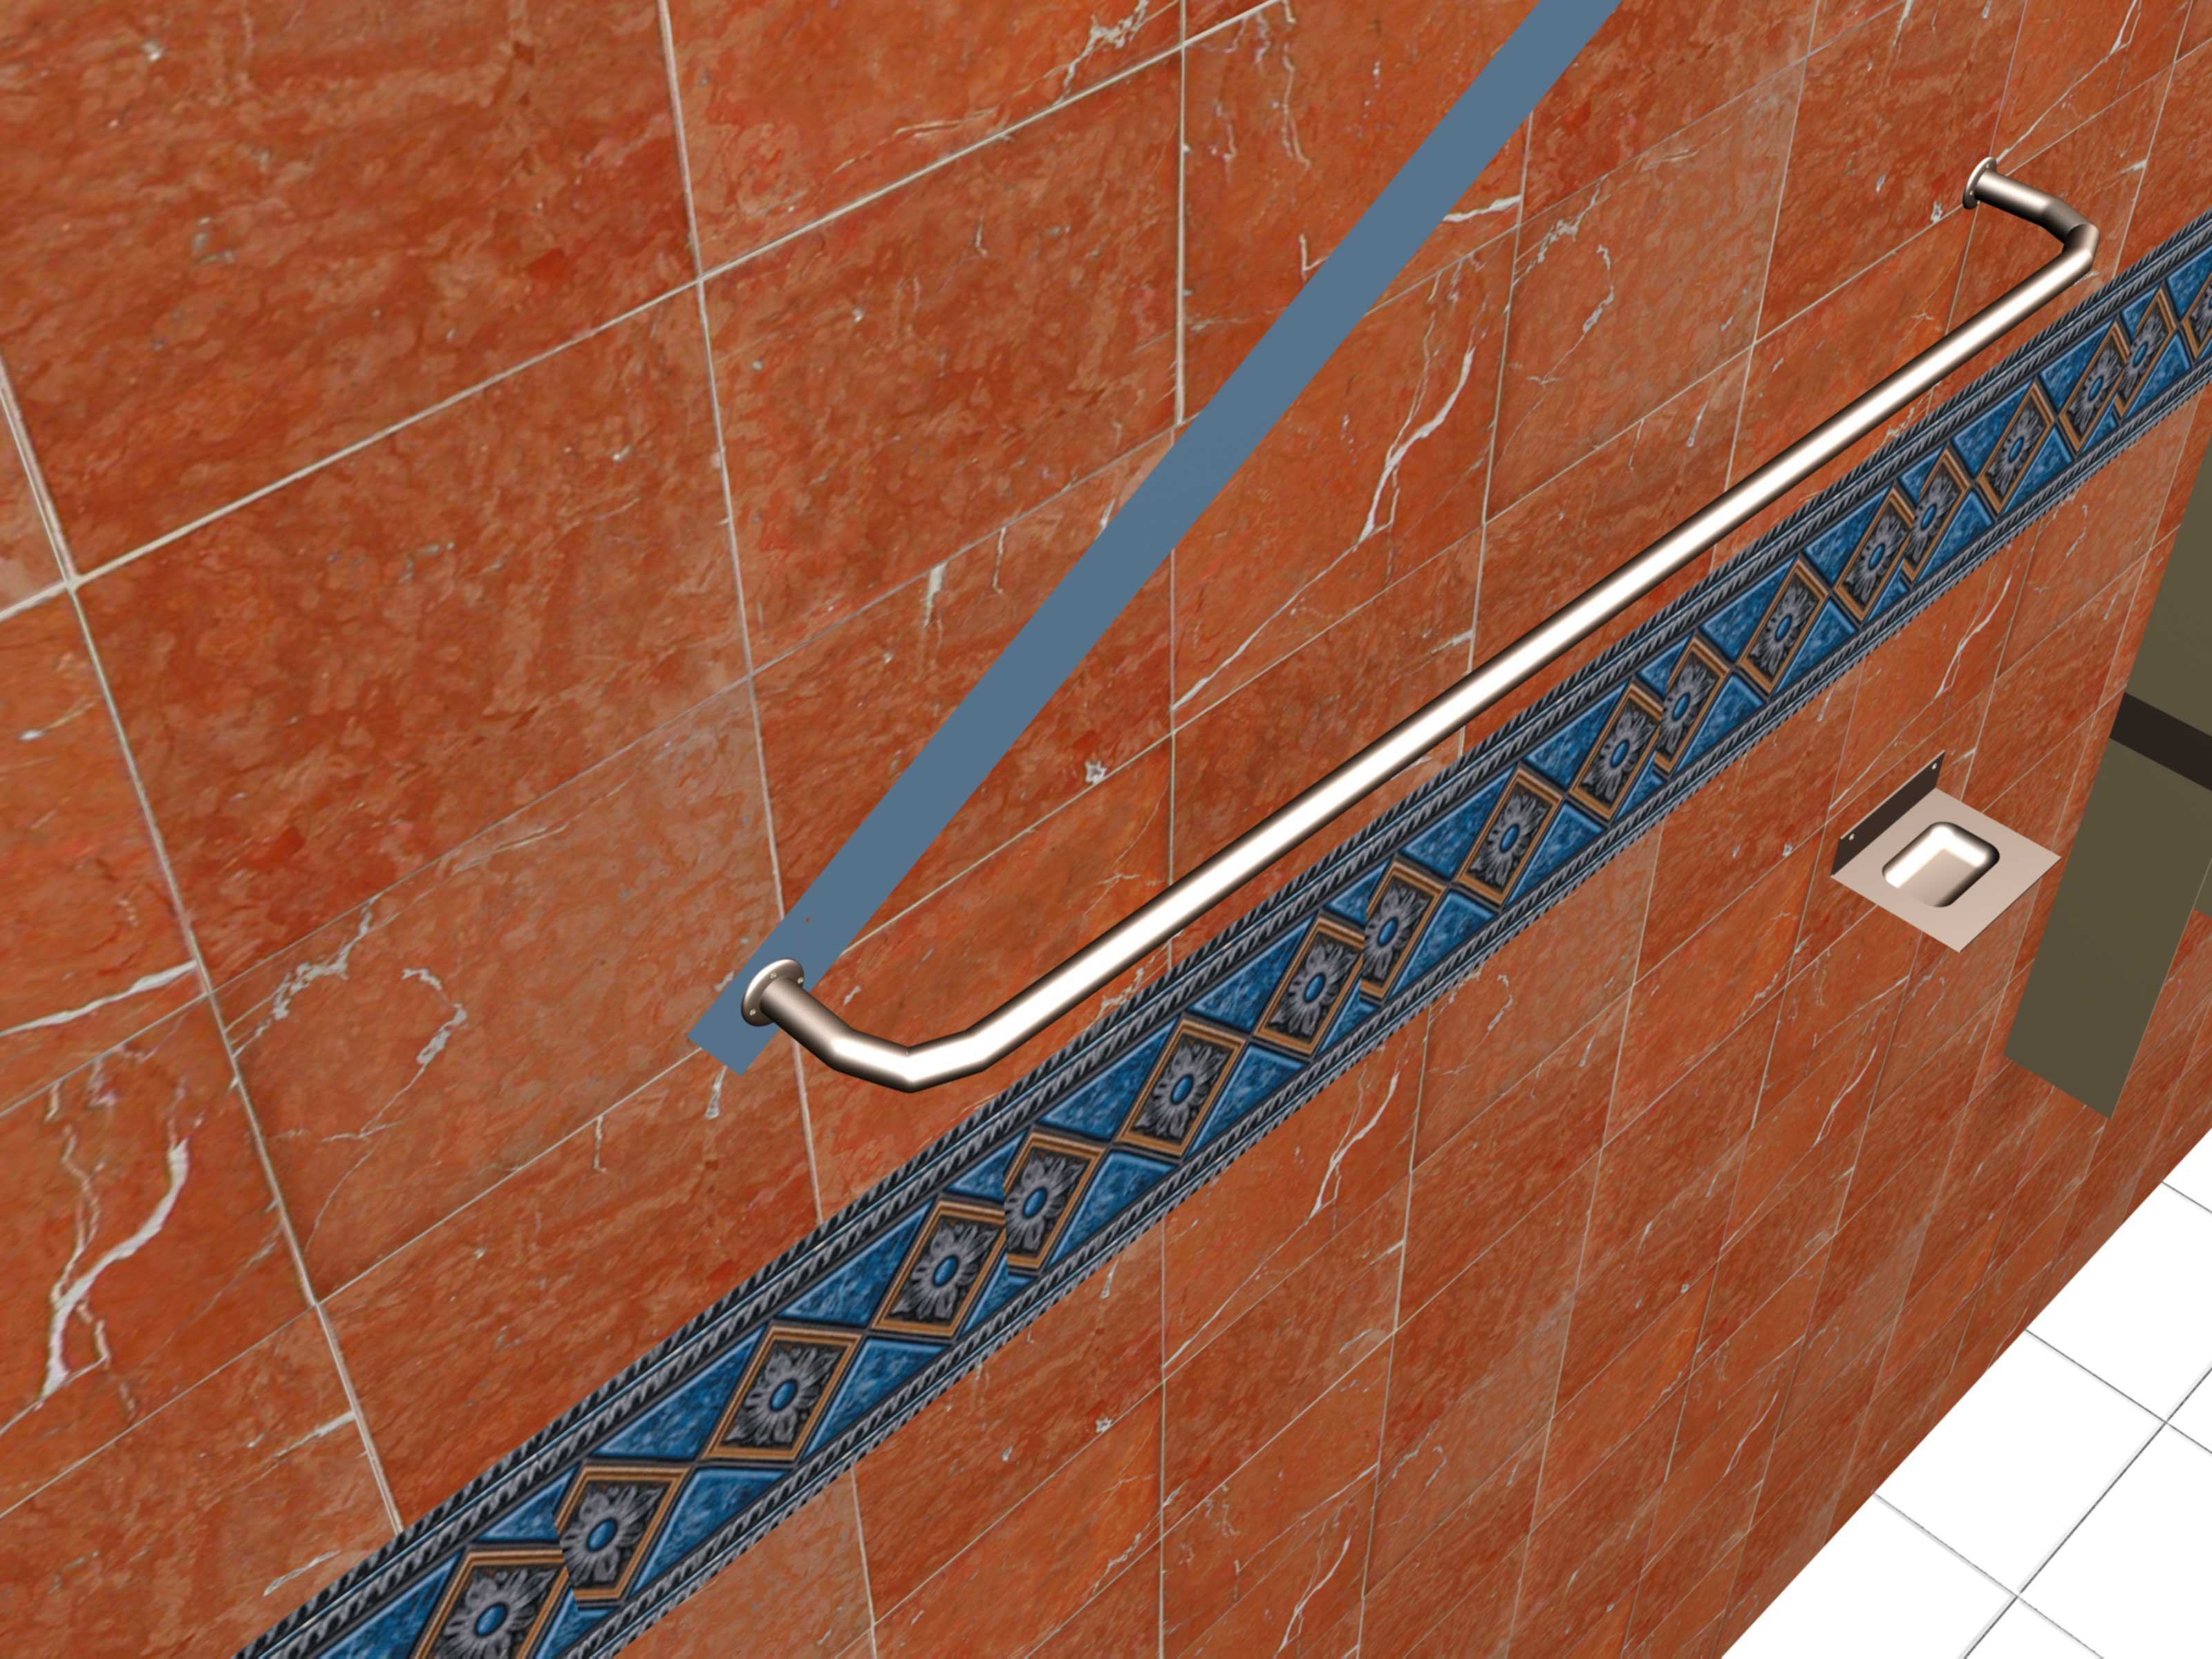 How to Install Bathroom Accessories on Ceramic Tile: 11 Steps